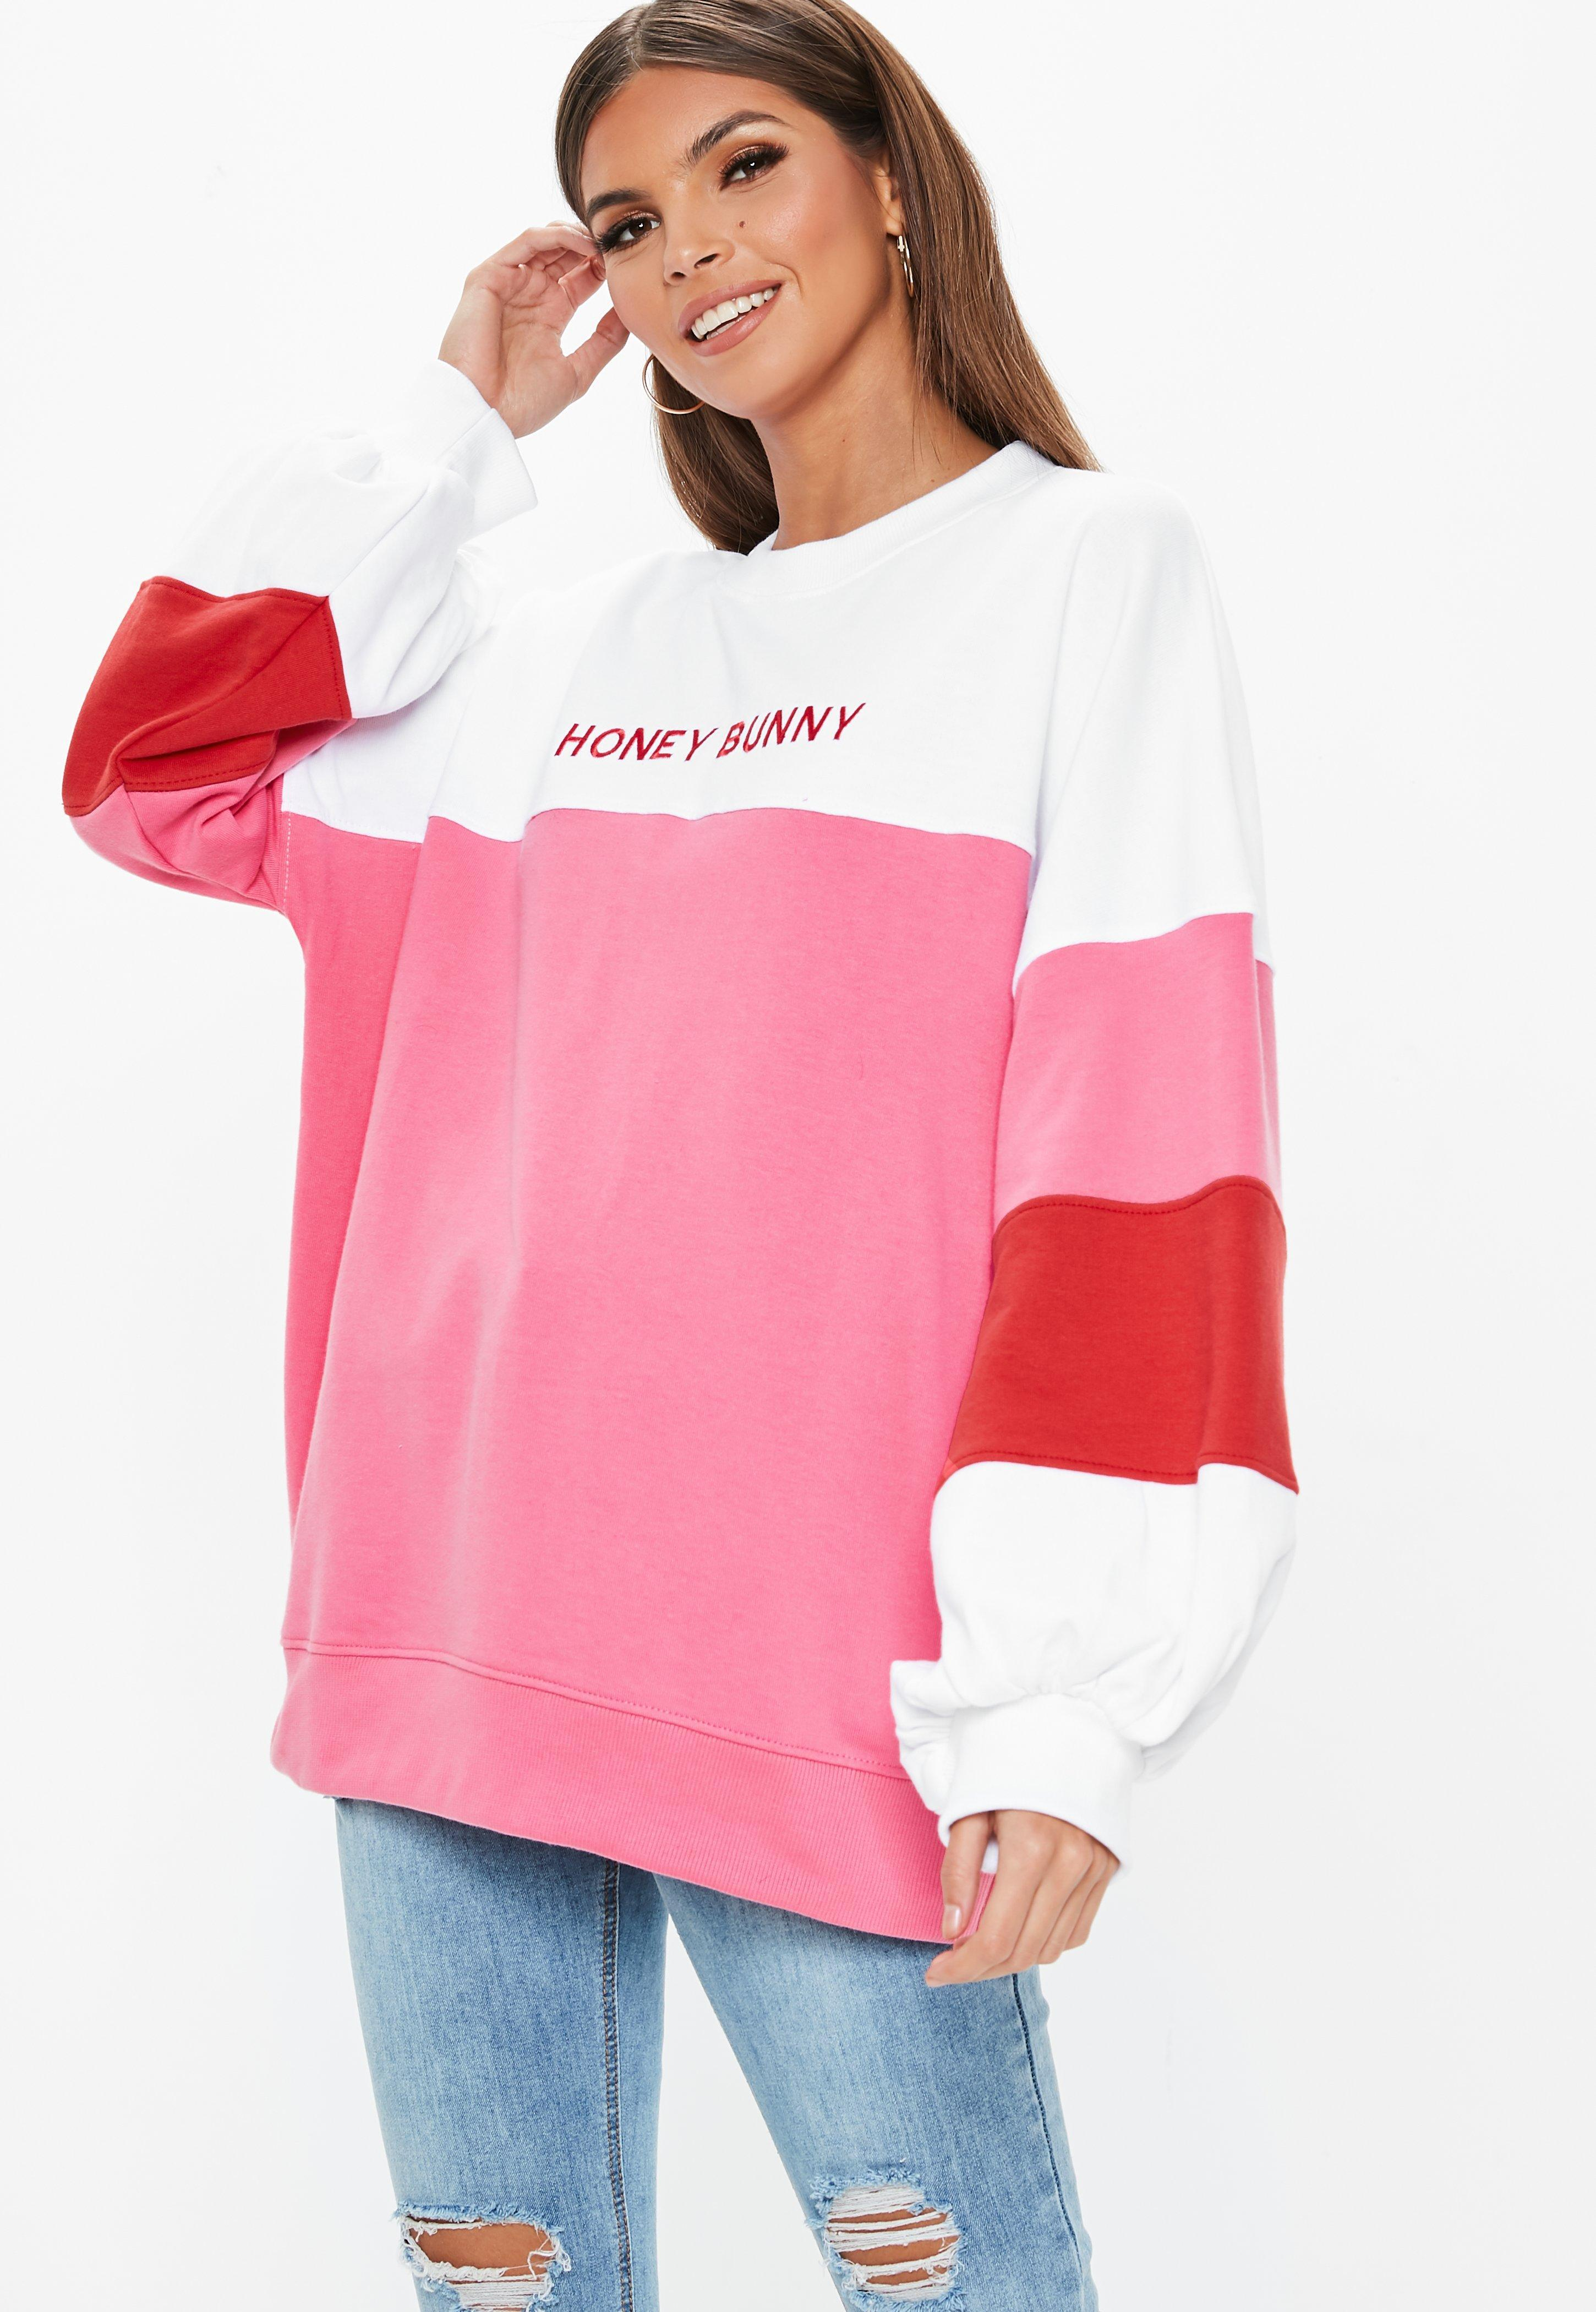 4efd2de9e Lyst - Missguided White Oversized Contrast Honey Bunny Embroidered ...